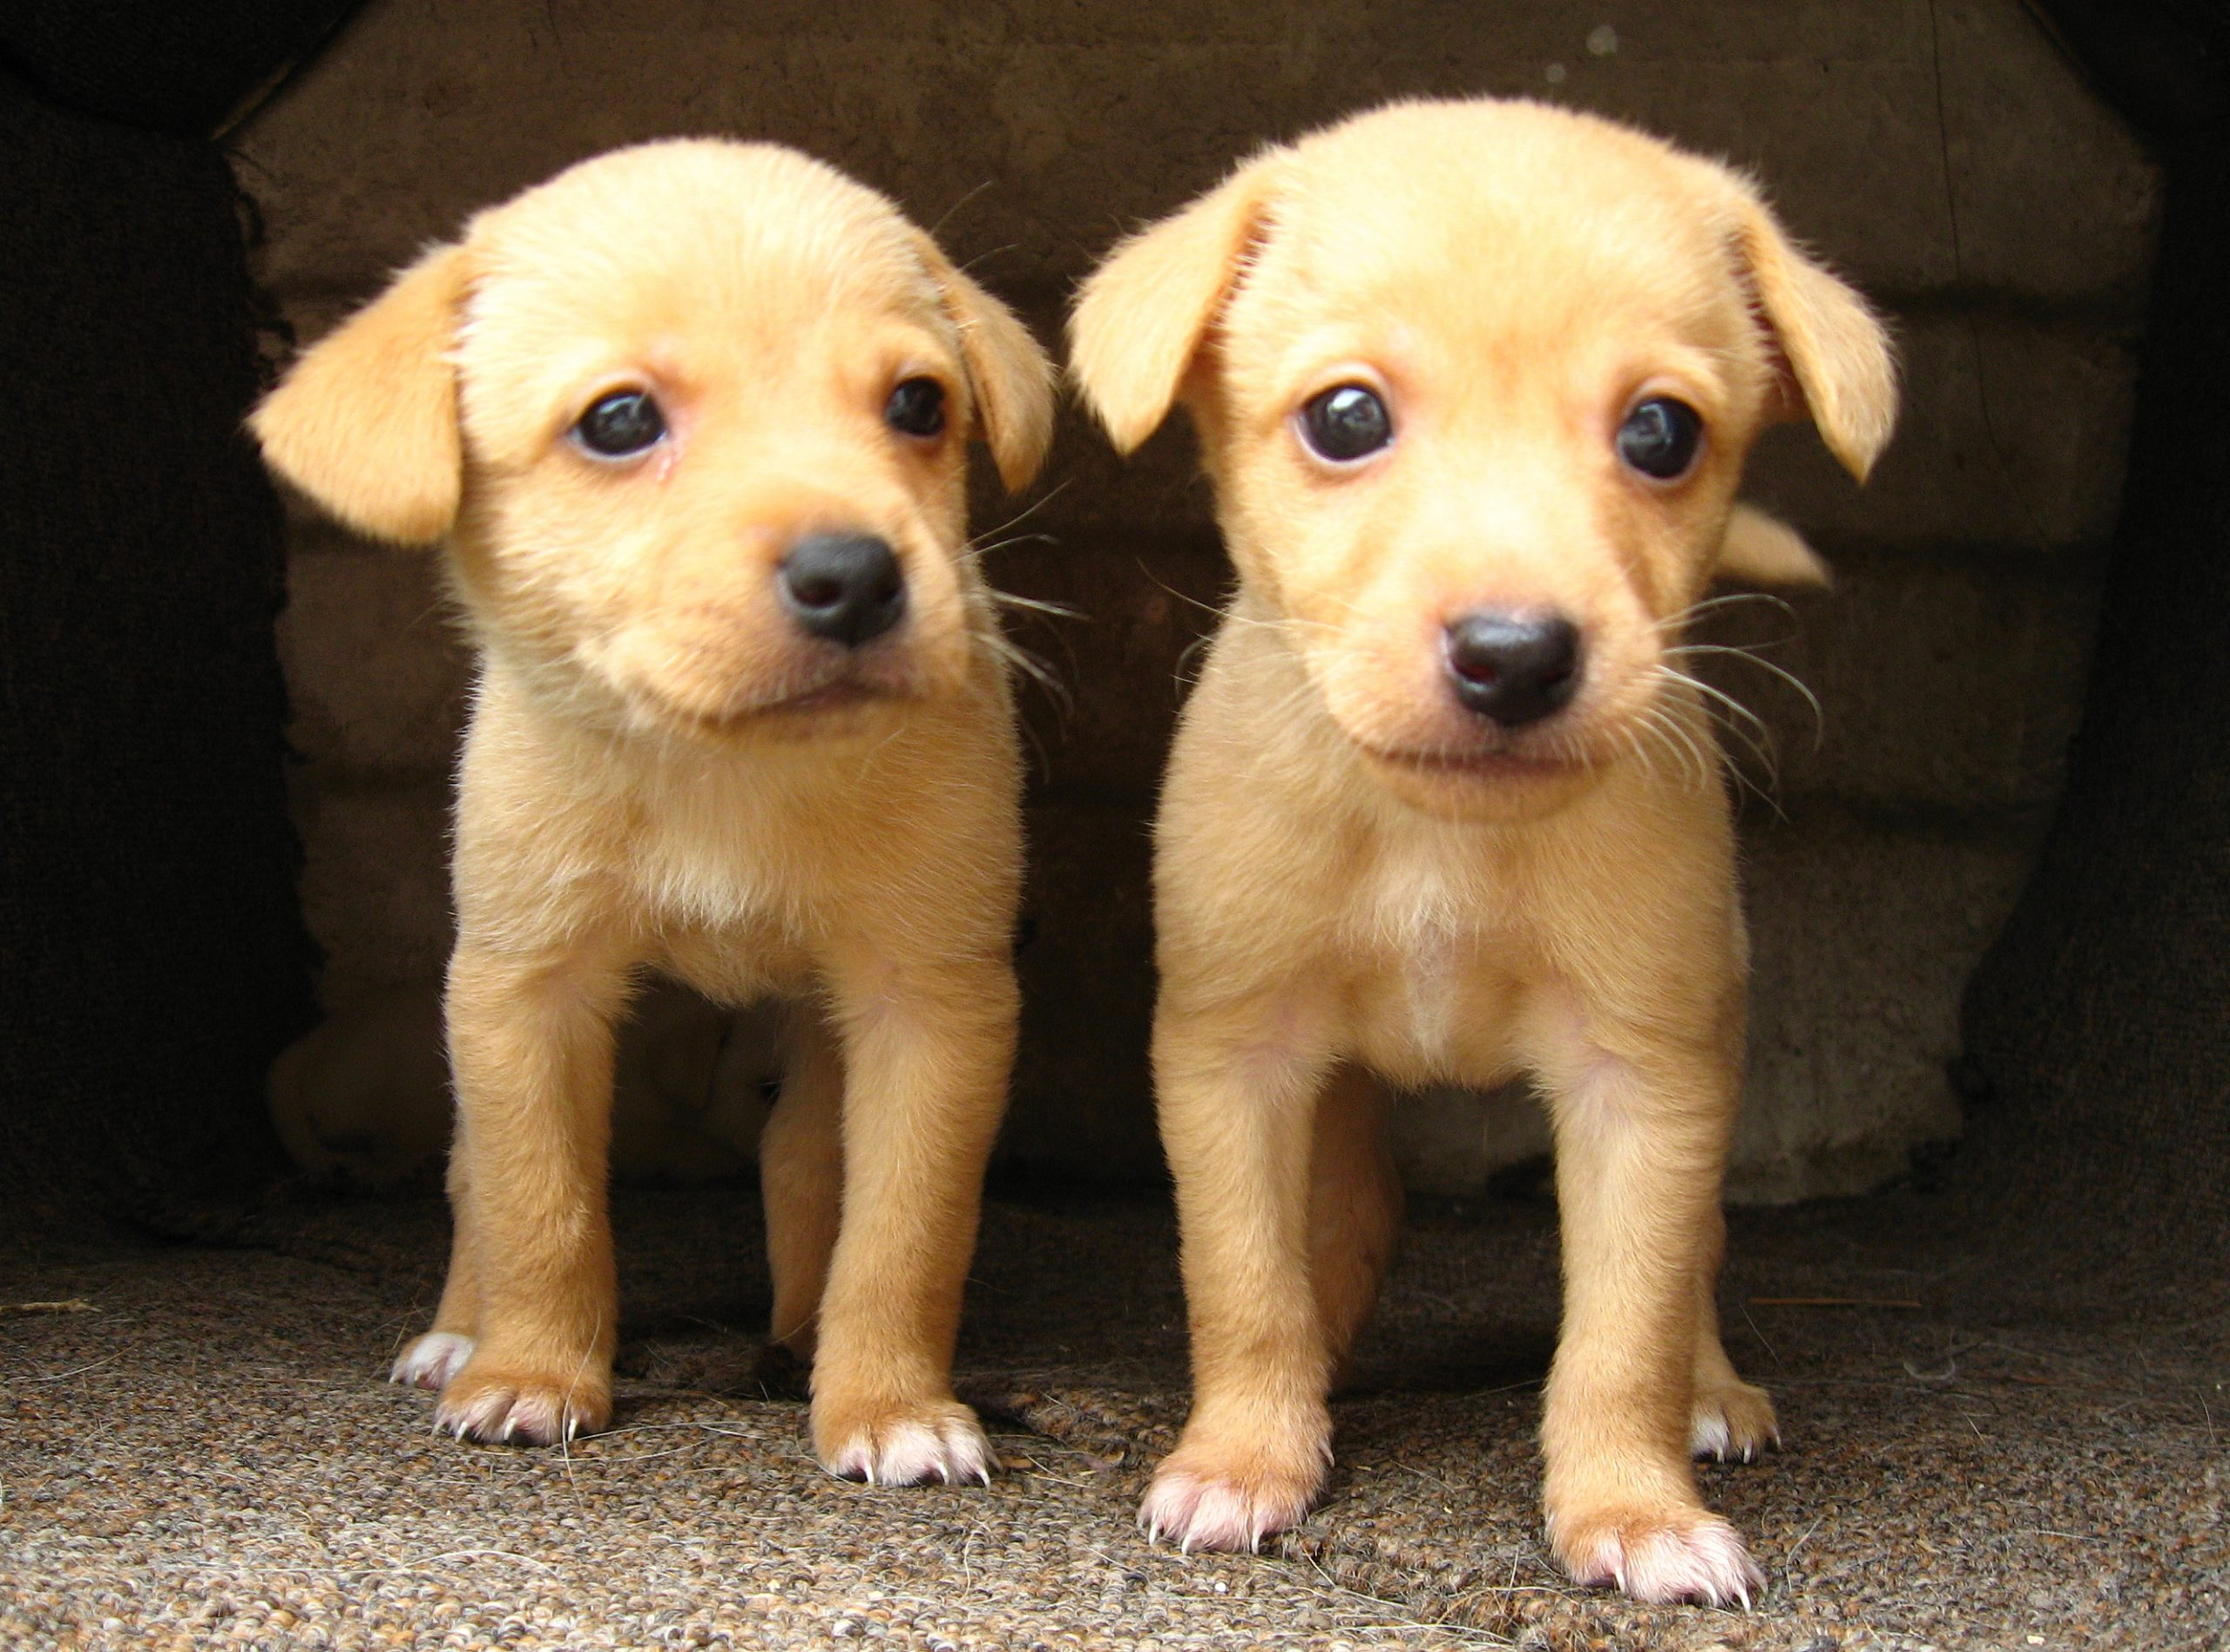 This picture shows two yellow puppies of similar age and size.